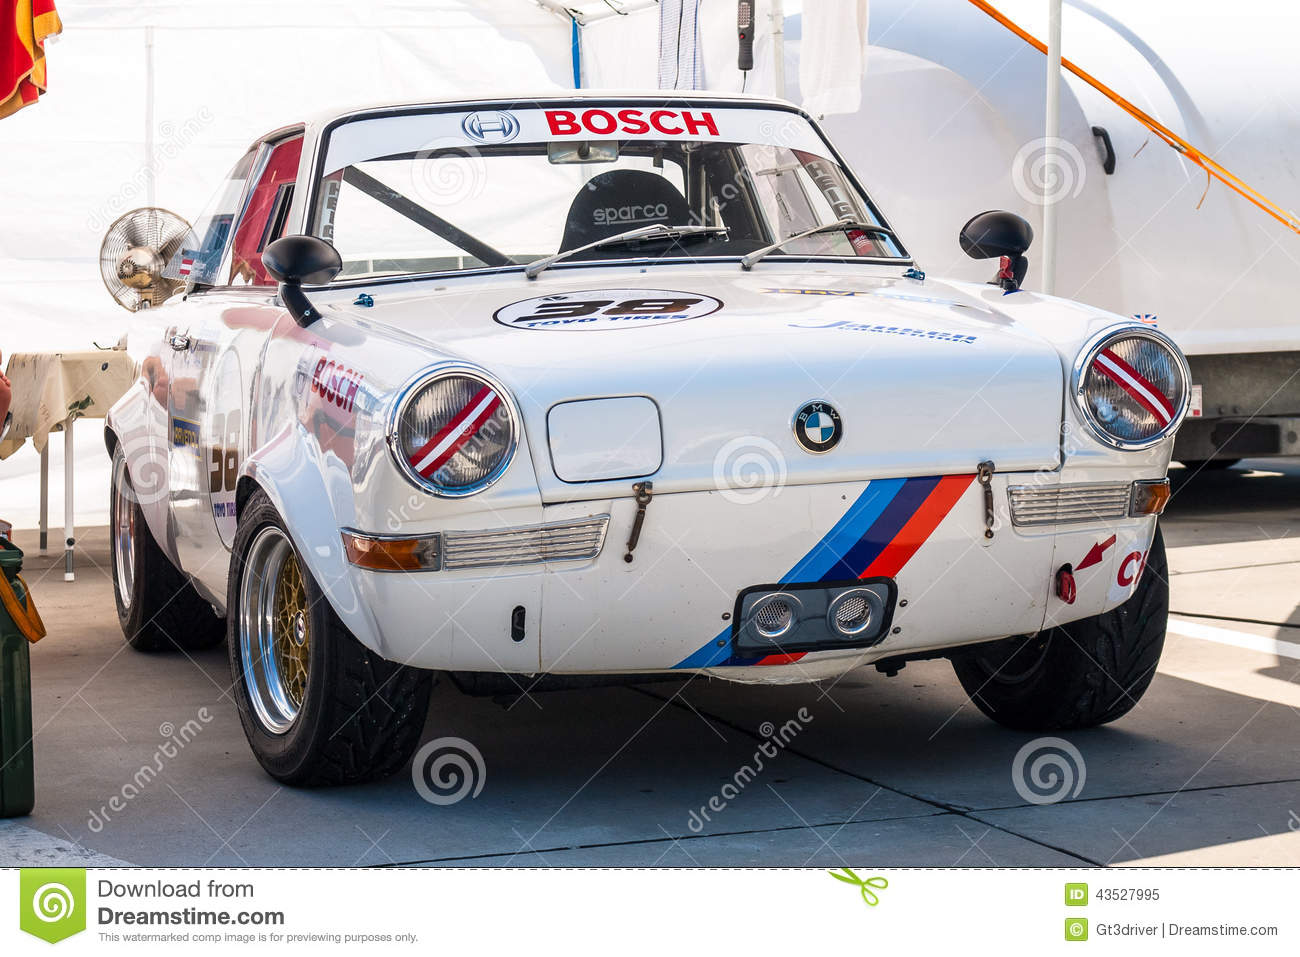 Hre Cooks Up Its Own Mid Engine Corvette Rendering furthermore Vw Arteon Variante Preis Technische Daten 186875 furthermore Editorial Image Bmw Racing Car Classic Photographed Histocup Event August Slovakia Ring Slovak Republic Image43527995 besides Watch in addition Watch. on opel fast cars